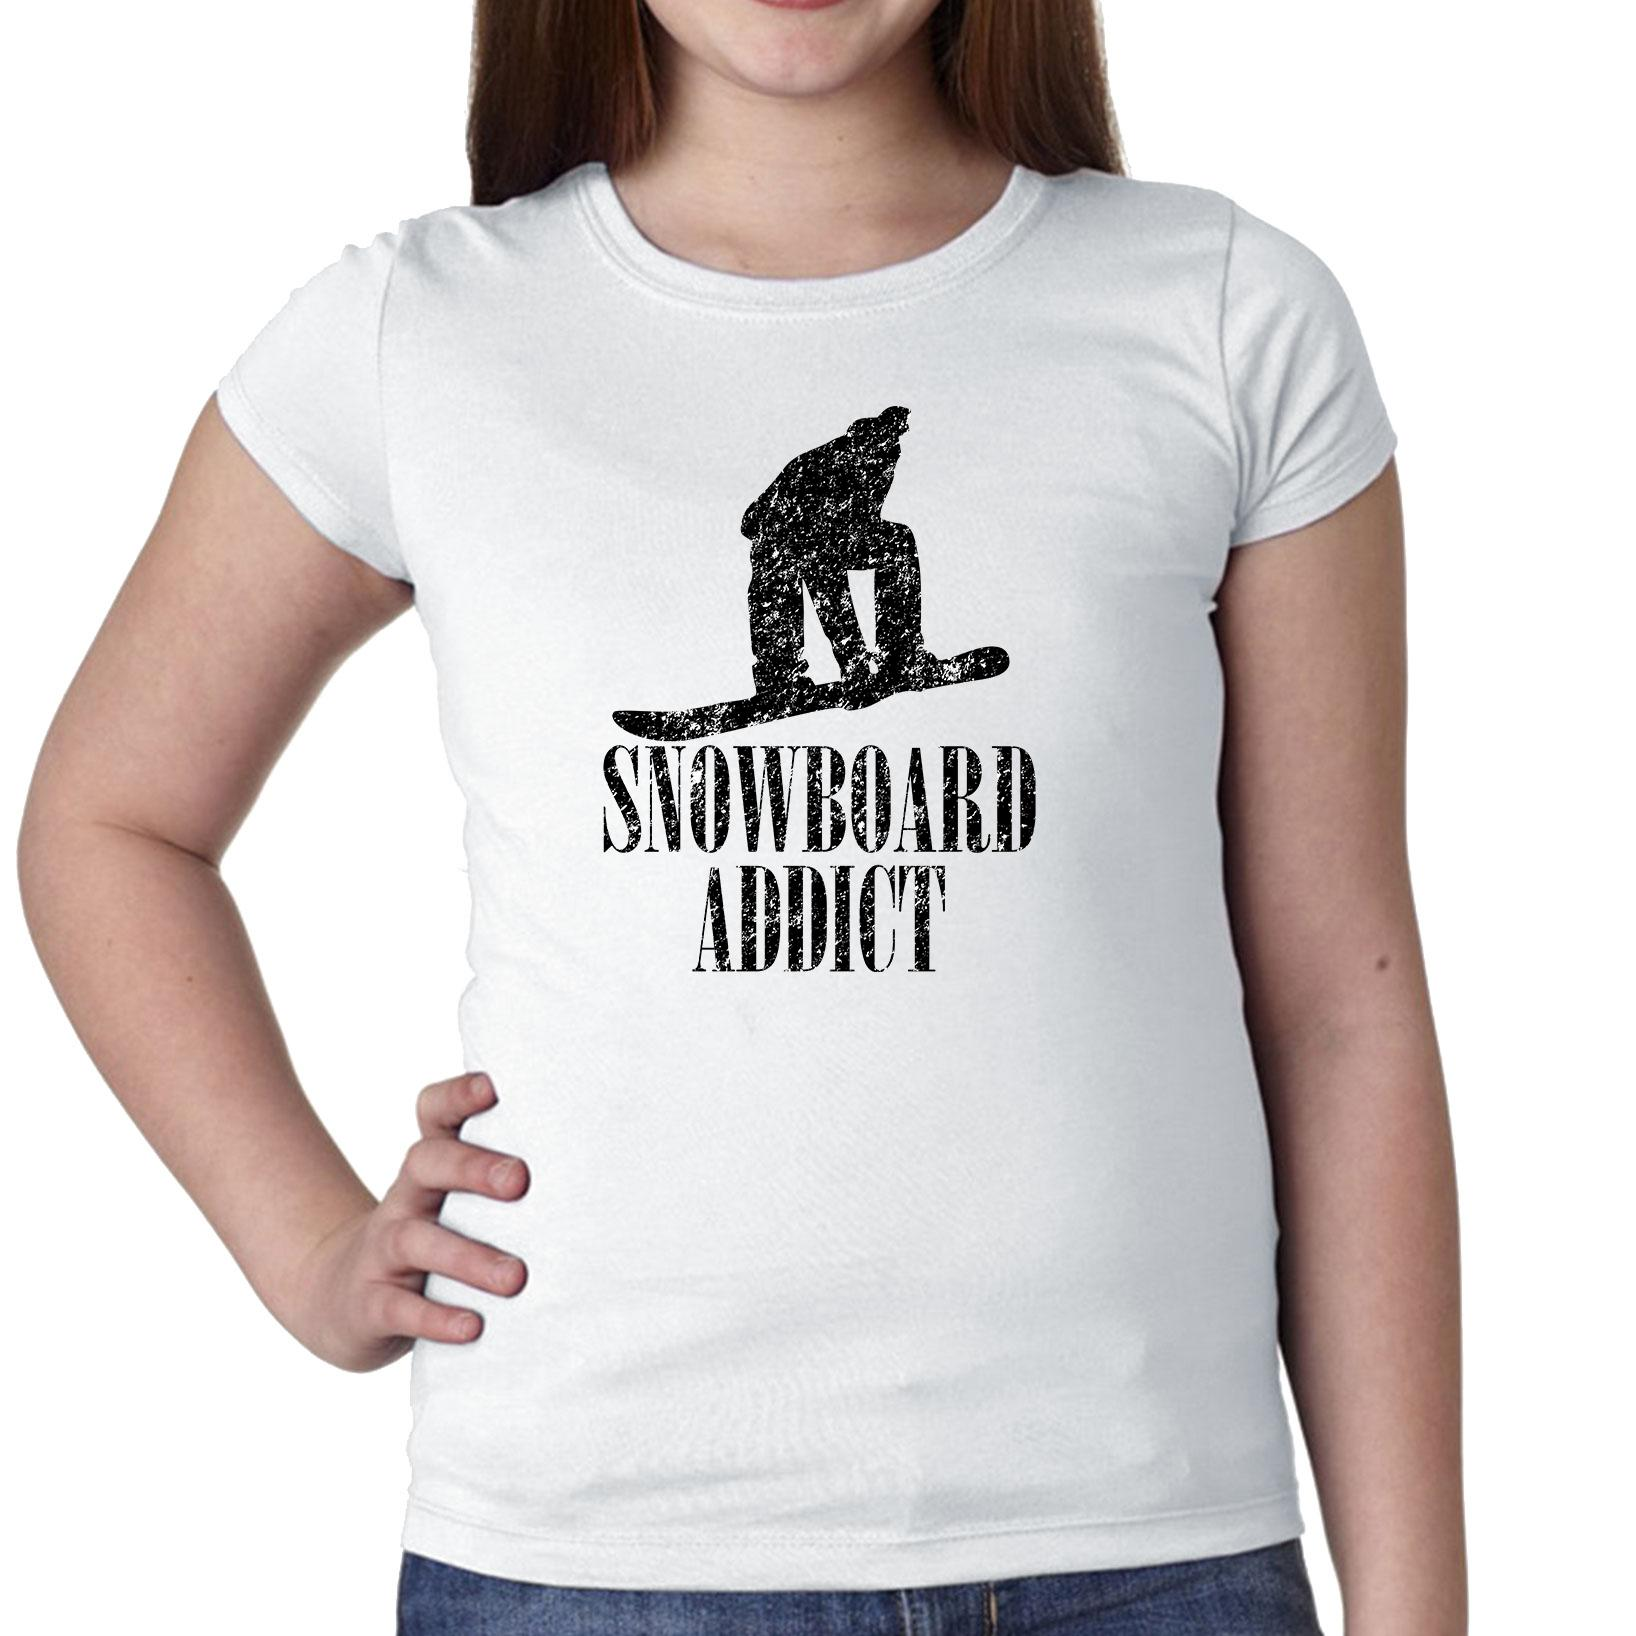 Snowboard Addict Trendy Silhouette Figure Girl's Cotton Youth T-Shirt by Hollywood Thread